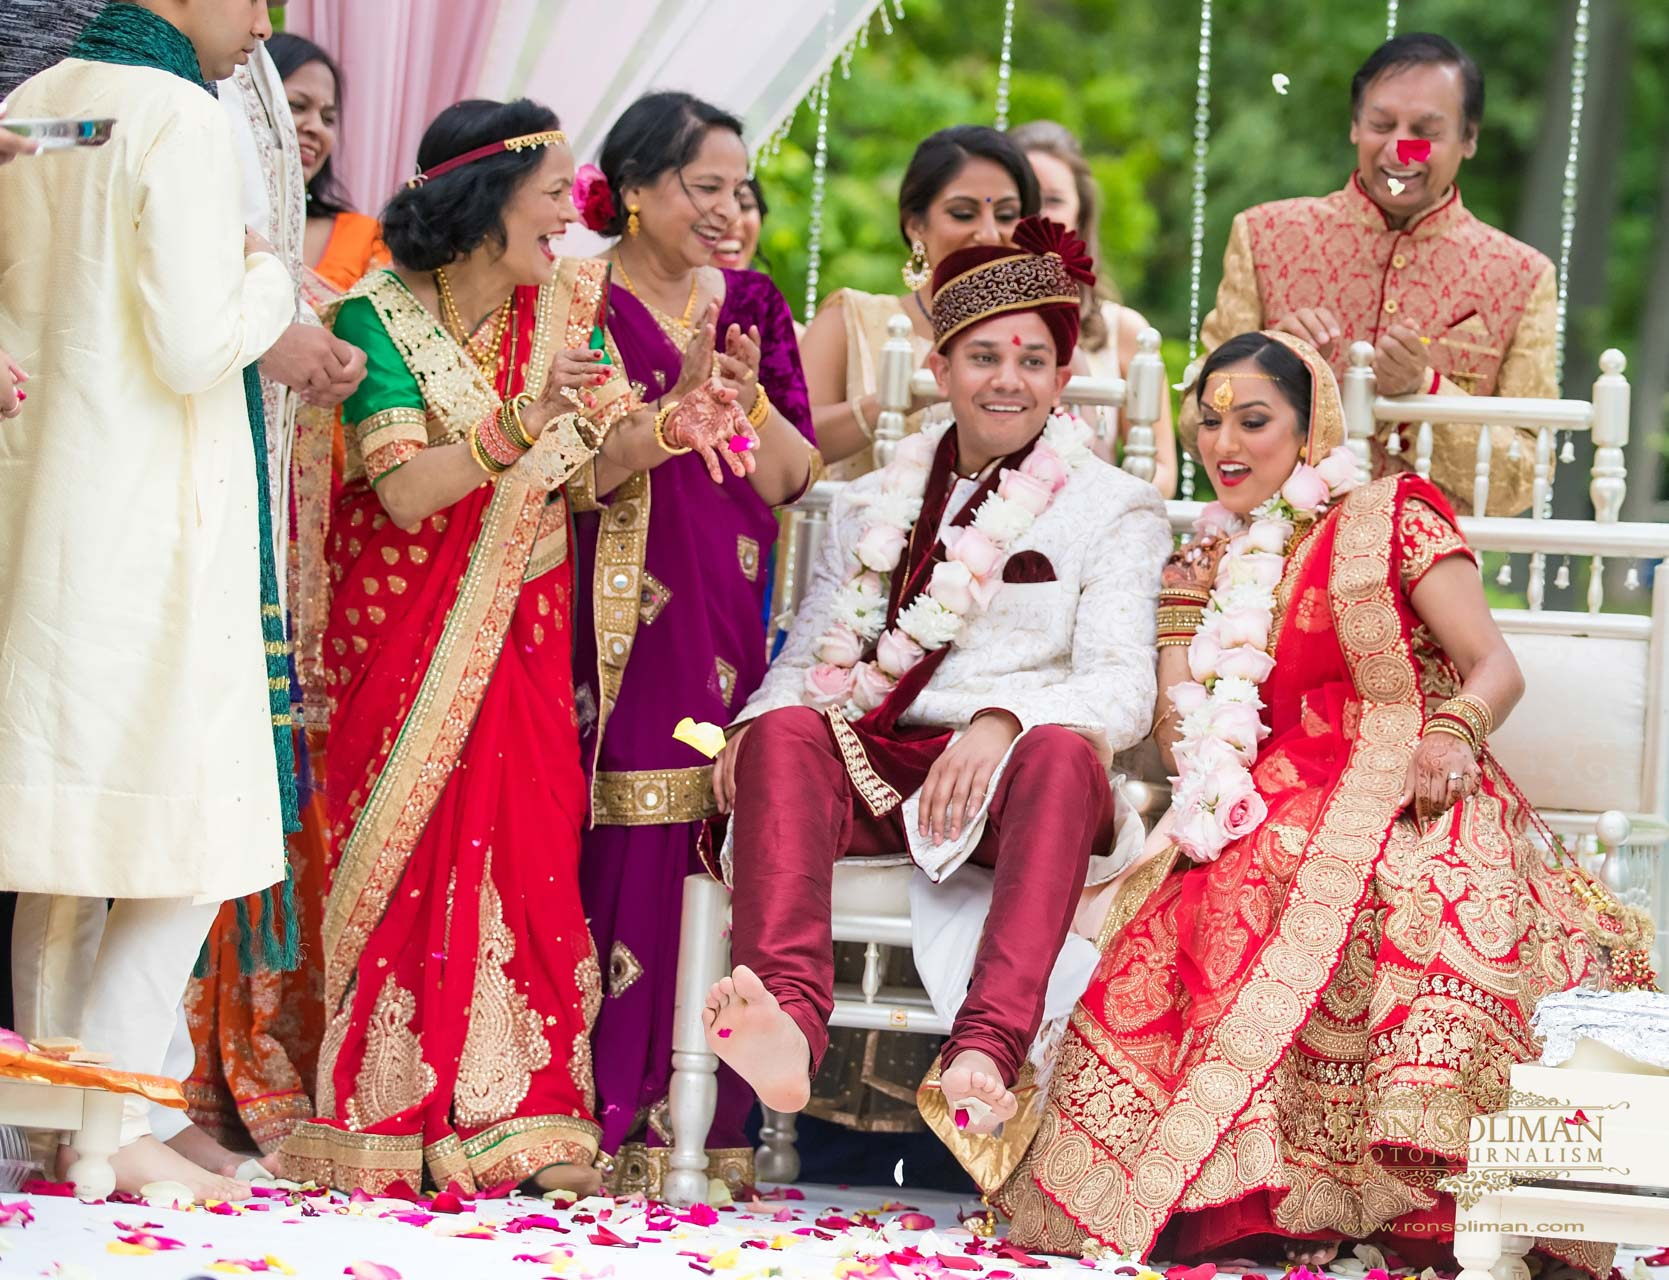 HILTON PEARL RIVER INDIAN WEDDING 43